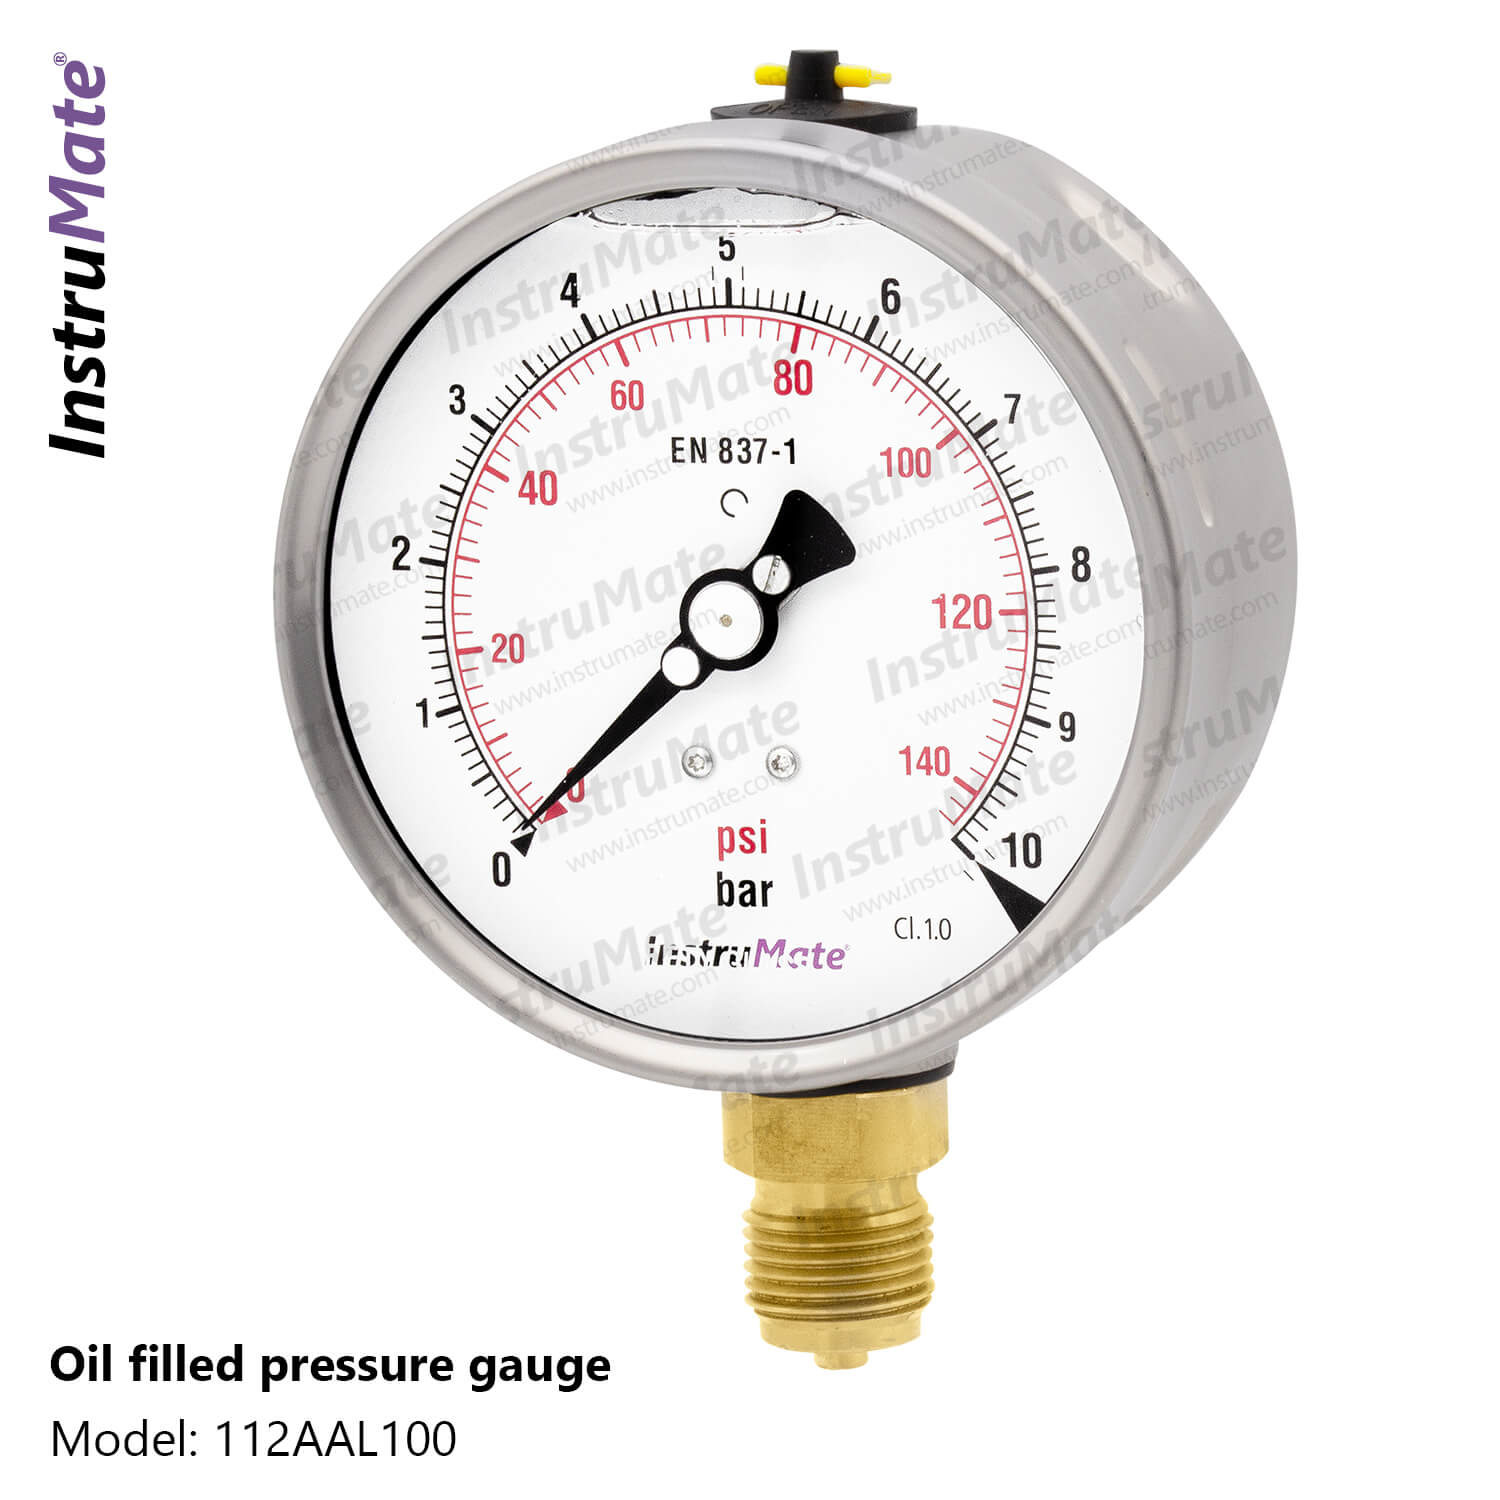 Oil Filled Pressure Gauge - 112AA - InstruMate